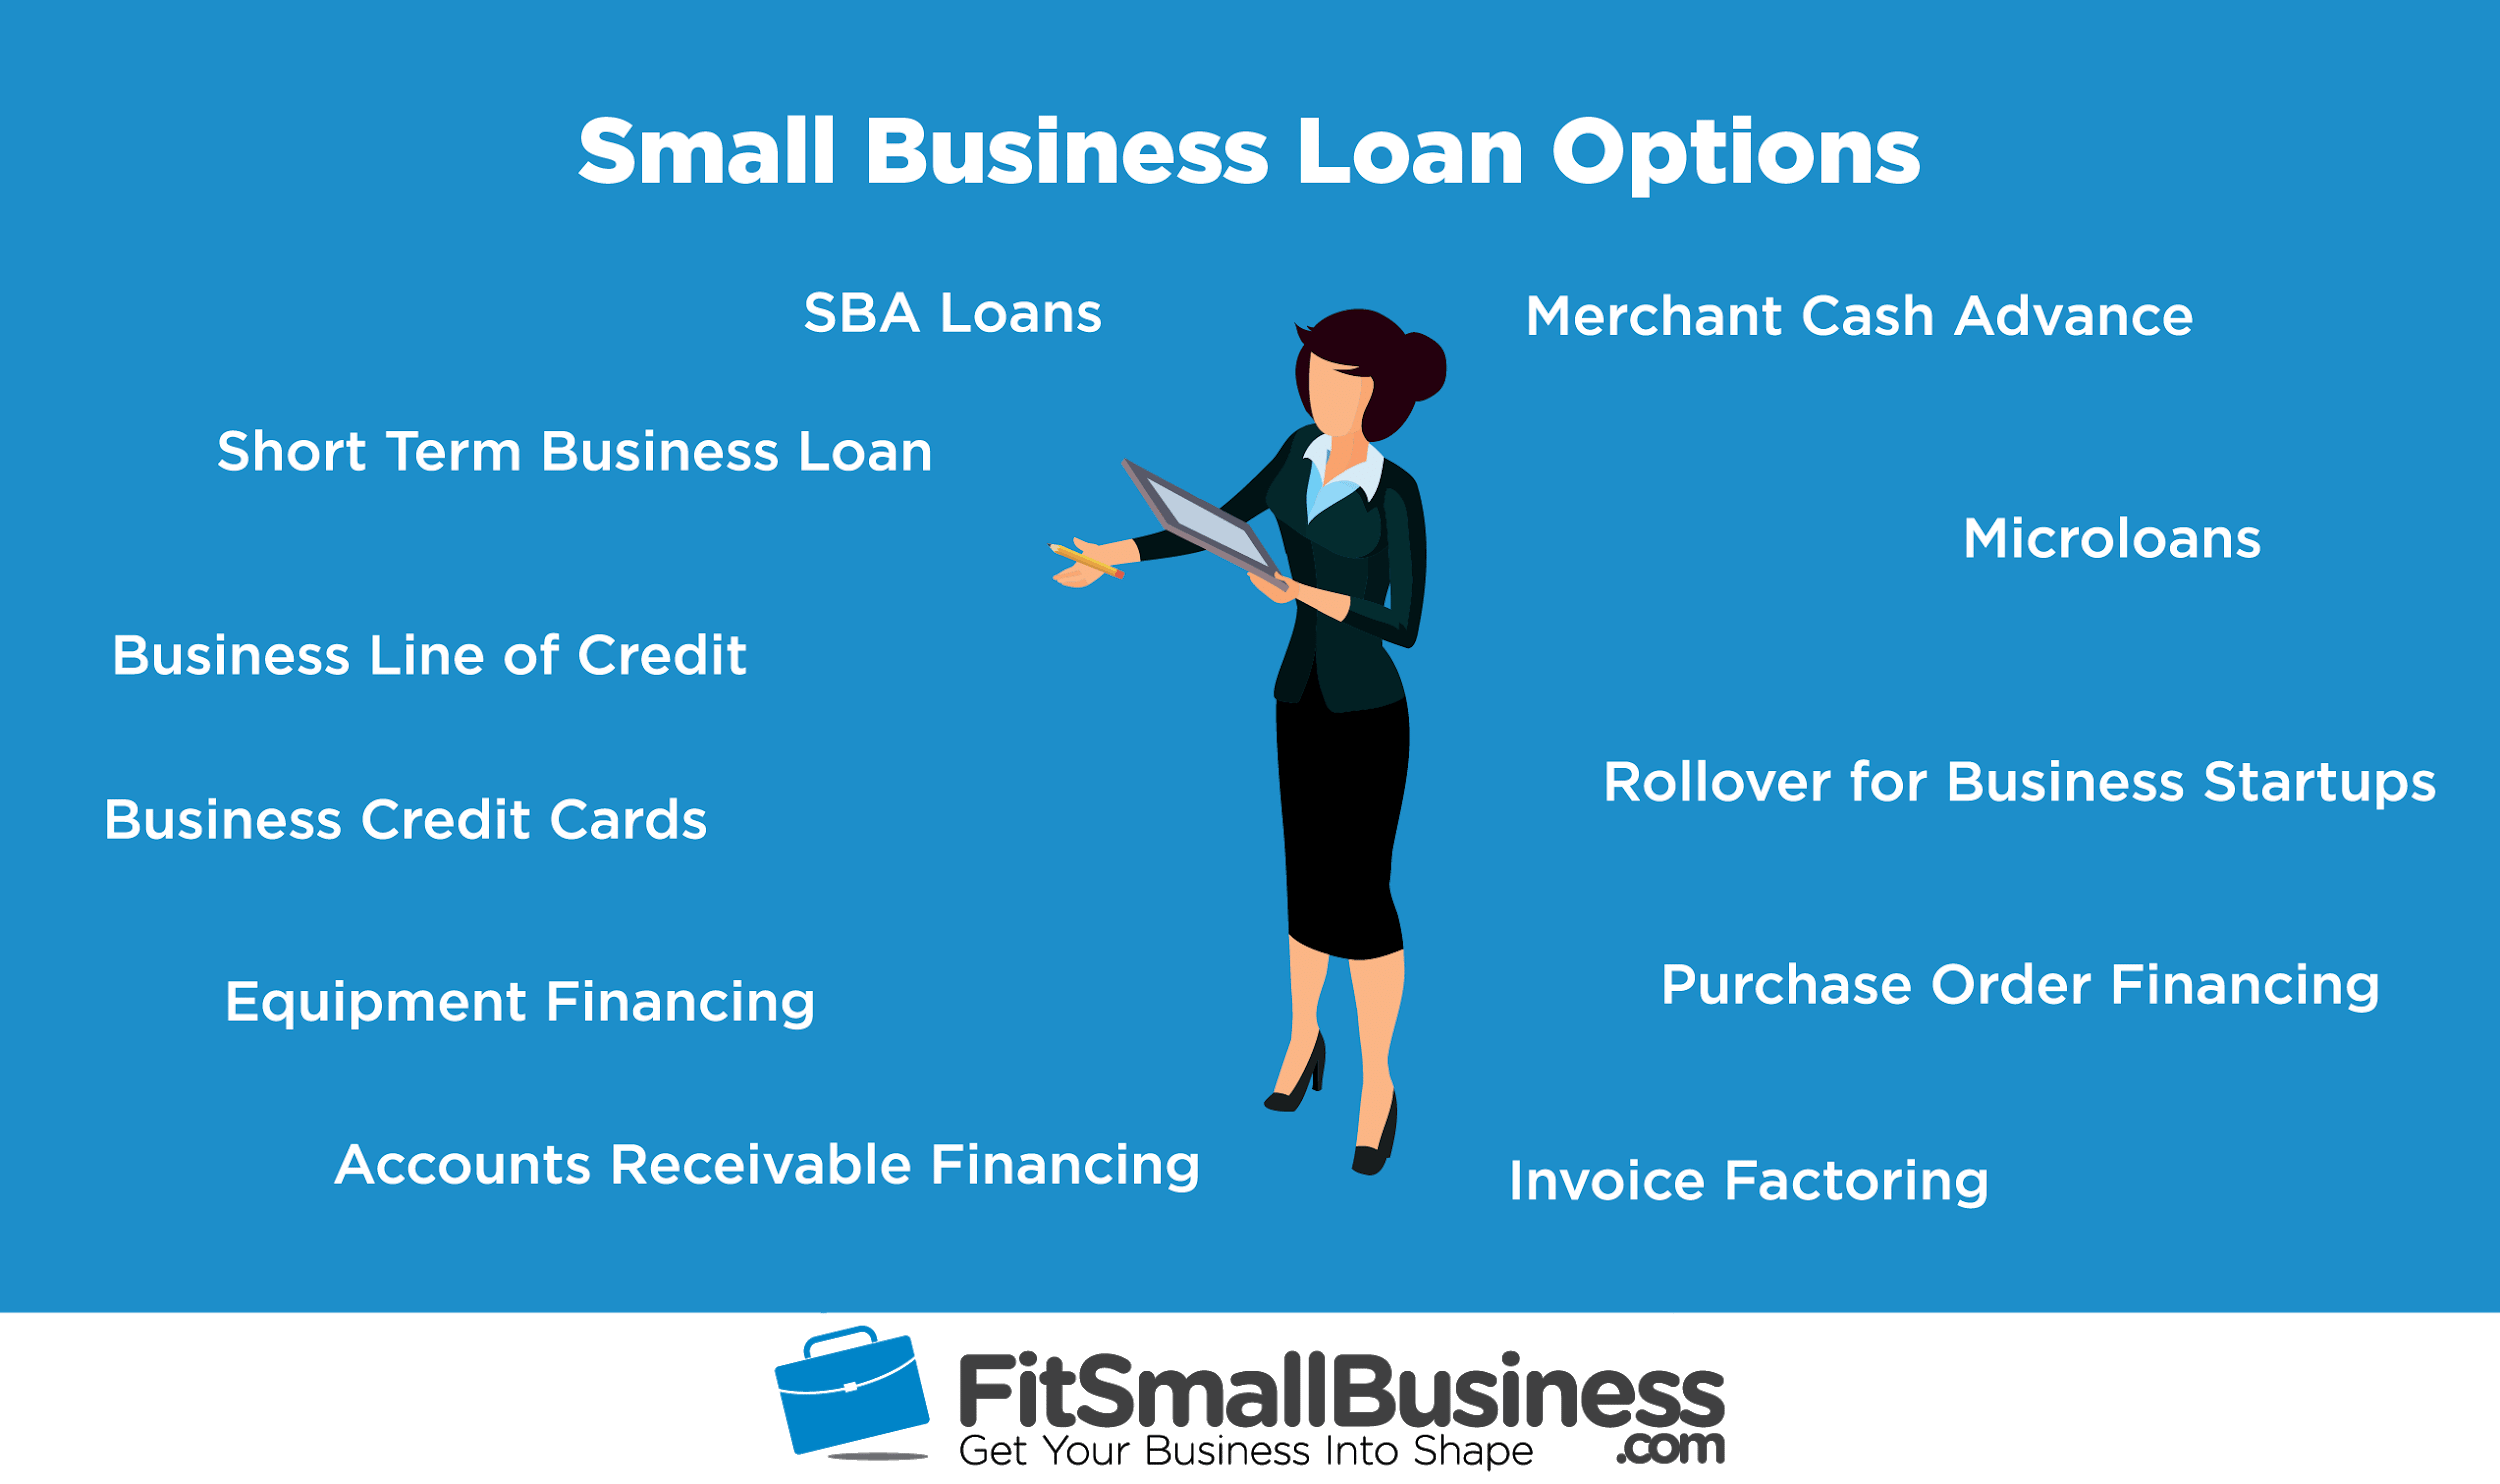 Small Business Loans: Find Your Best Financing Options